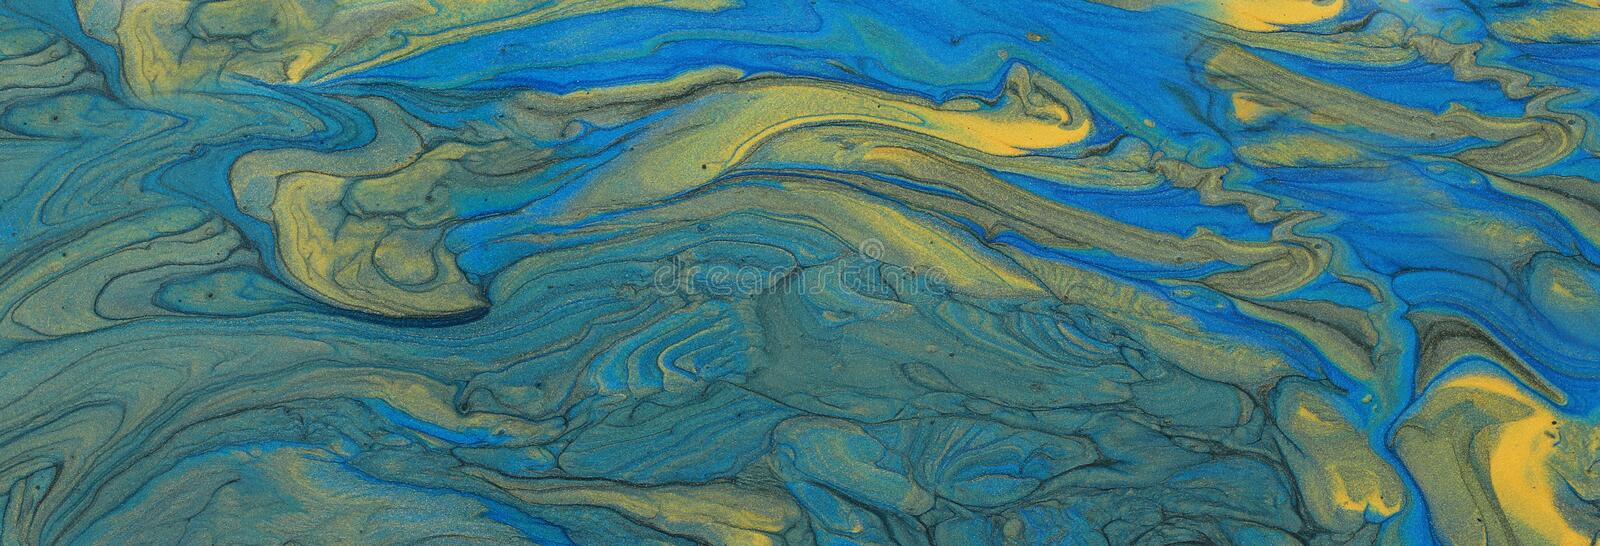 Art photography of abstract marbleized effect background. blue and gold creative colors. Beautiful paint.  stock photo